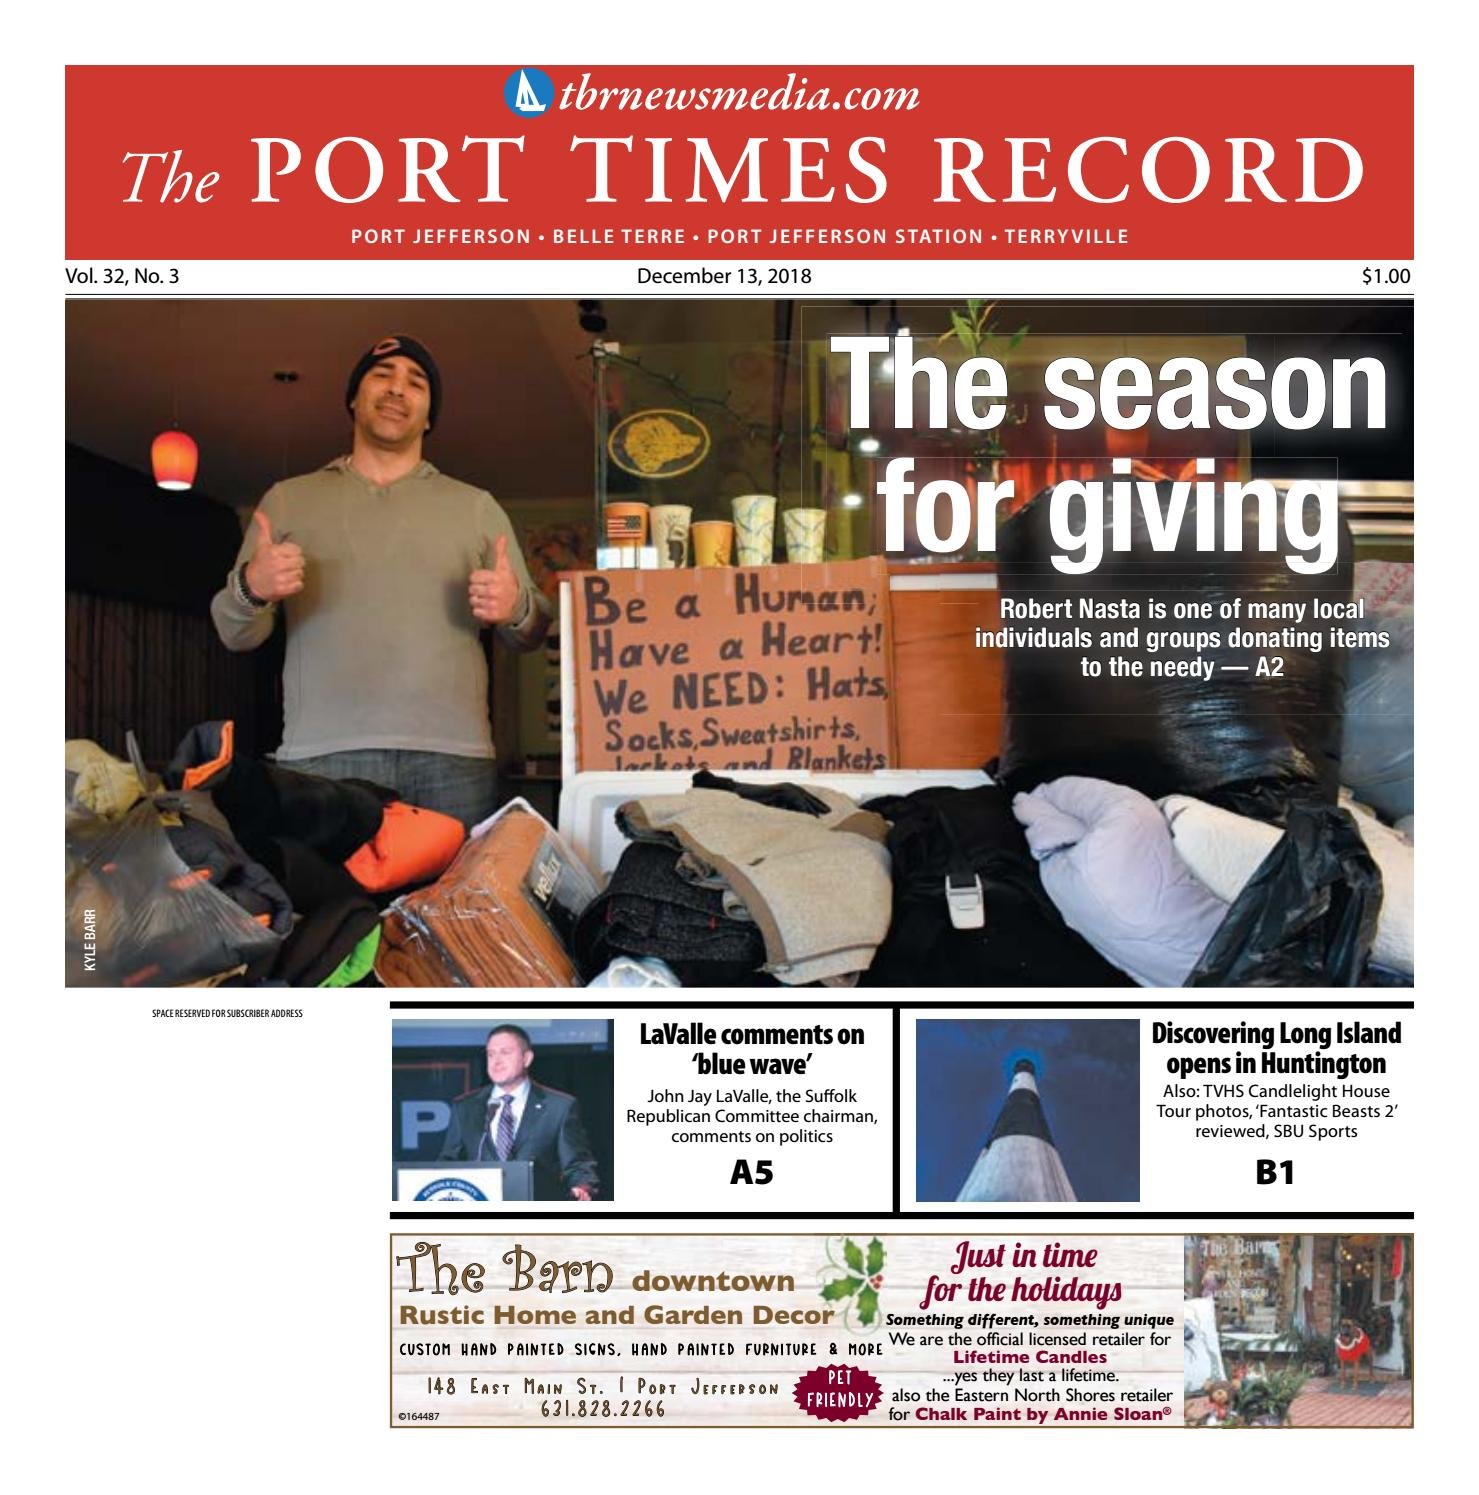 The Port Times Record - December 13, 2018